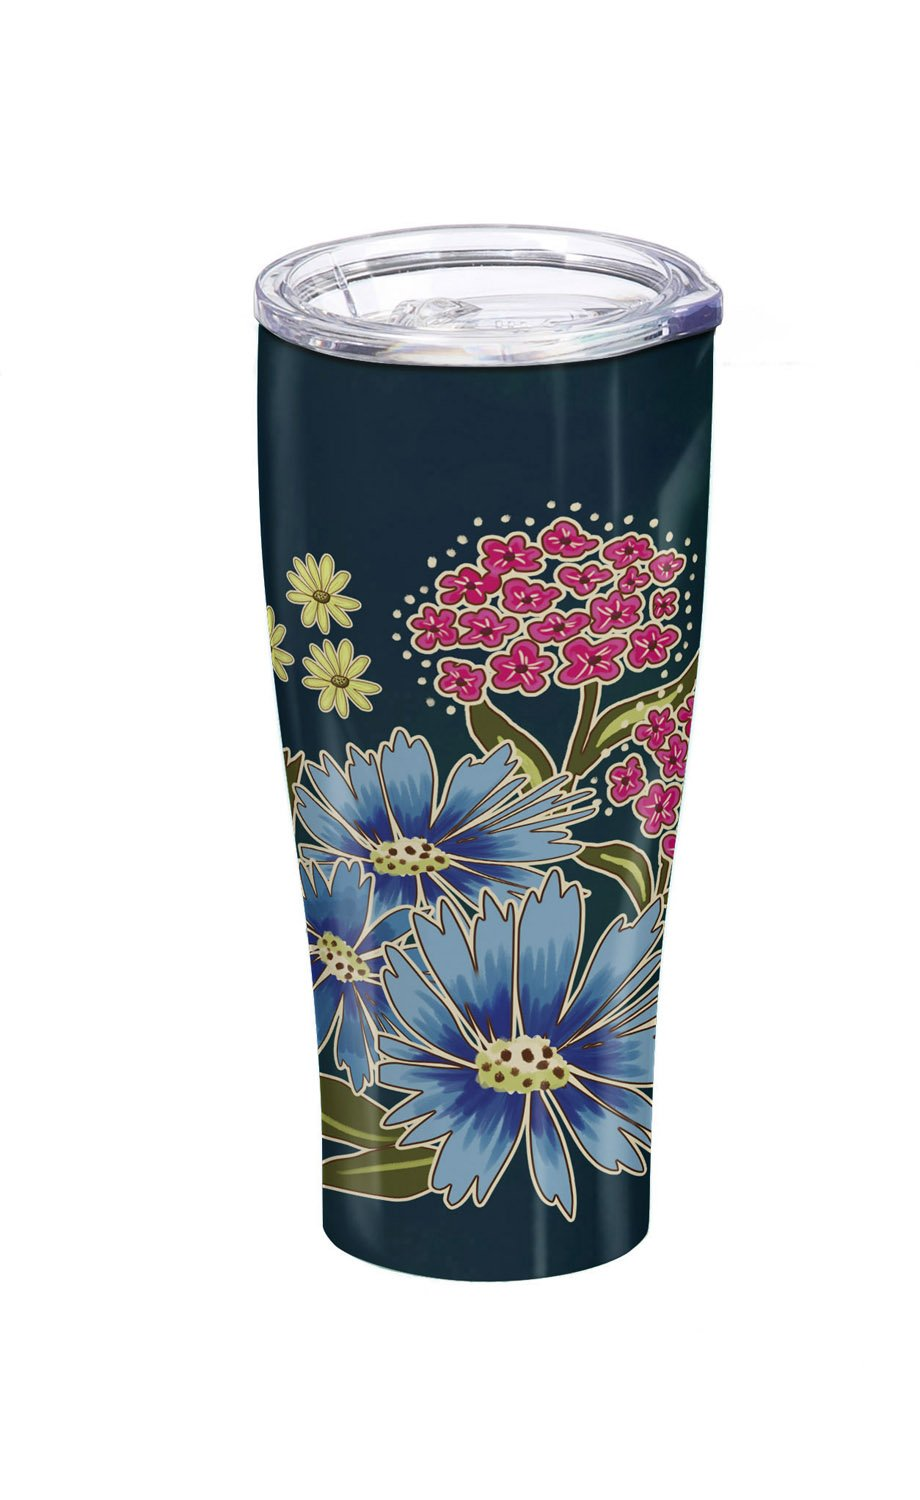 Cypress Home Green Floral Garden Stainless Steel Hot Beverage Travel Cup, 17 ounces